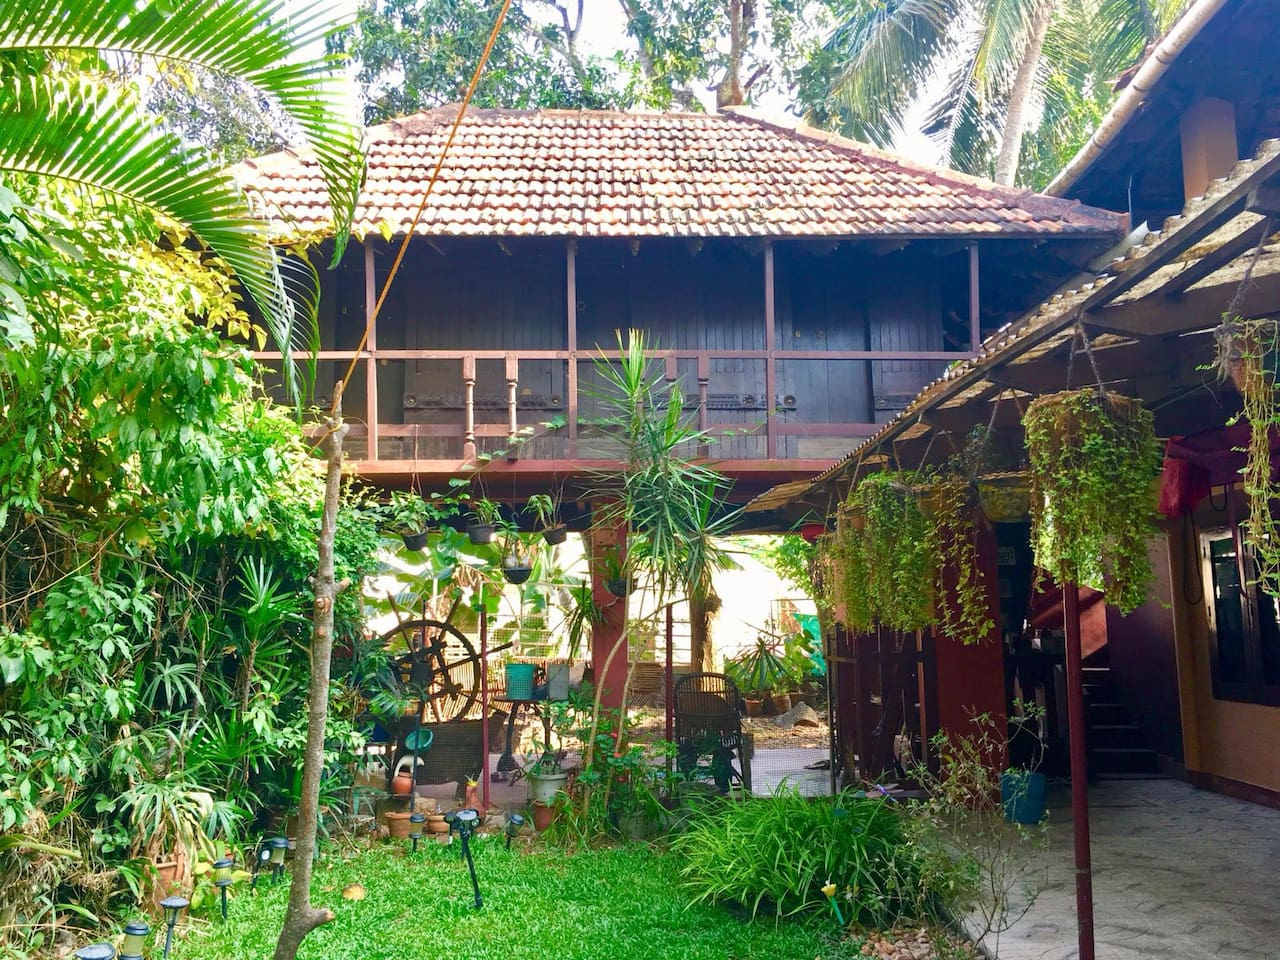 140 year old, wooden Kerala cabins